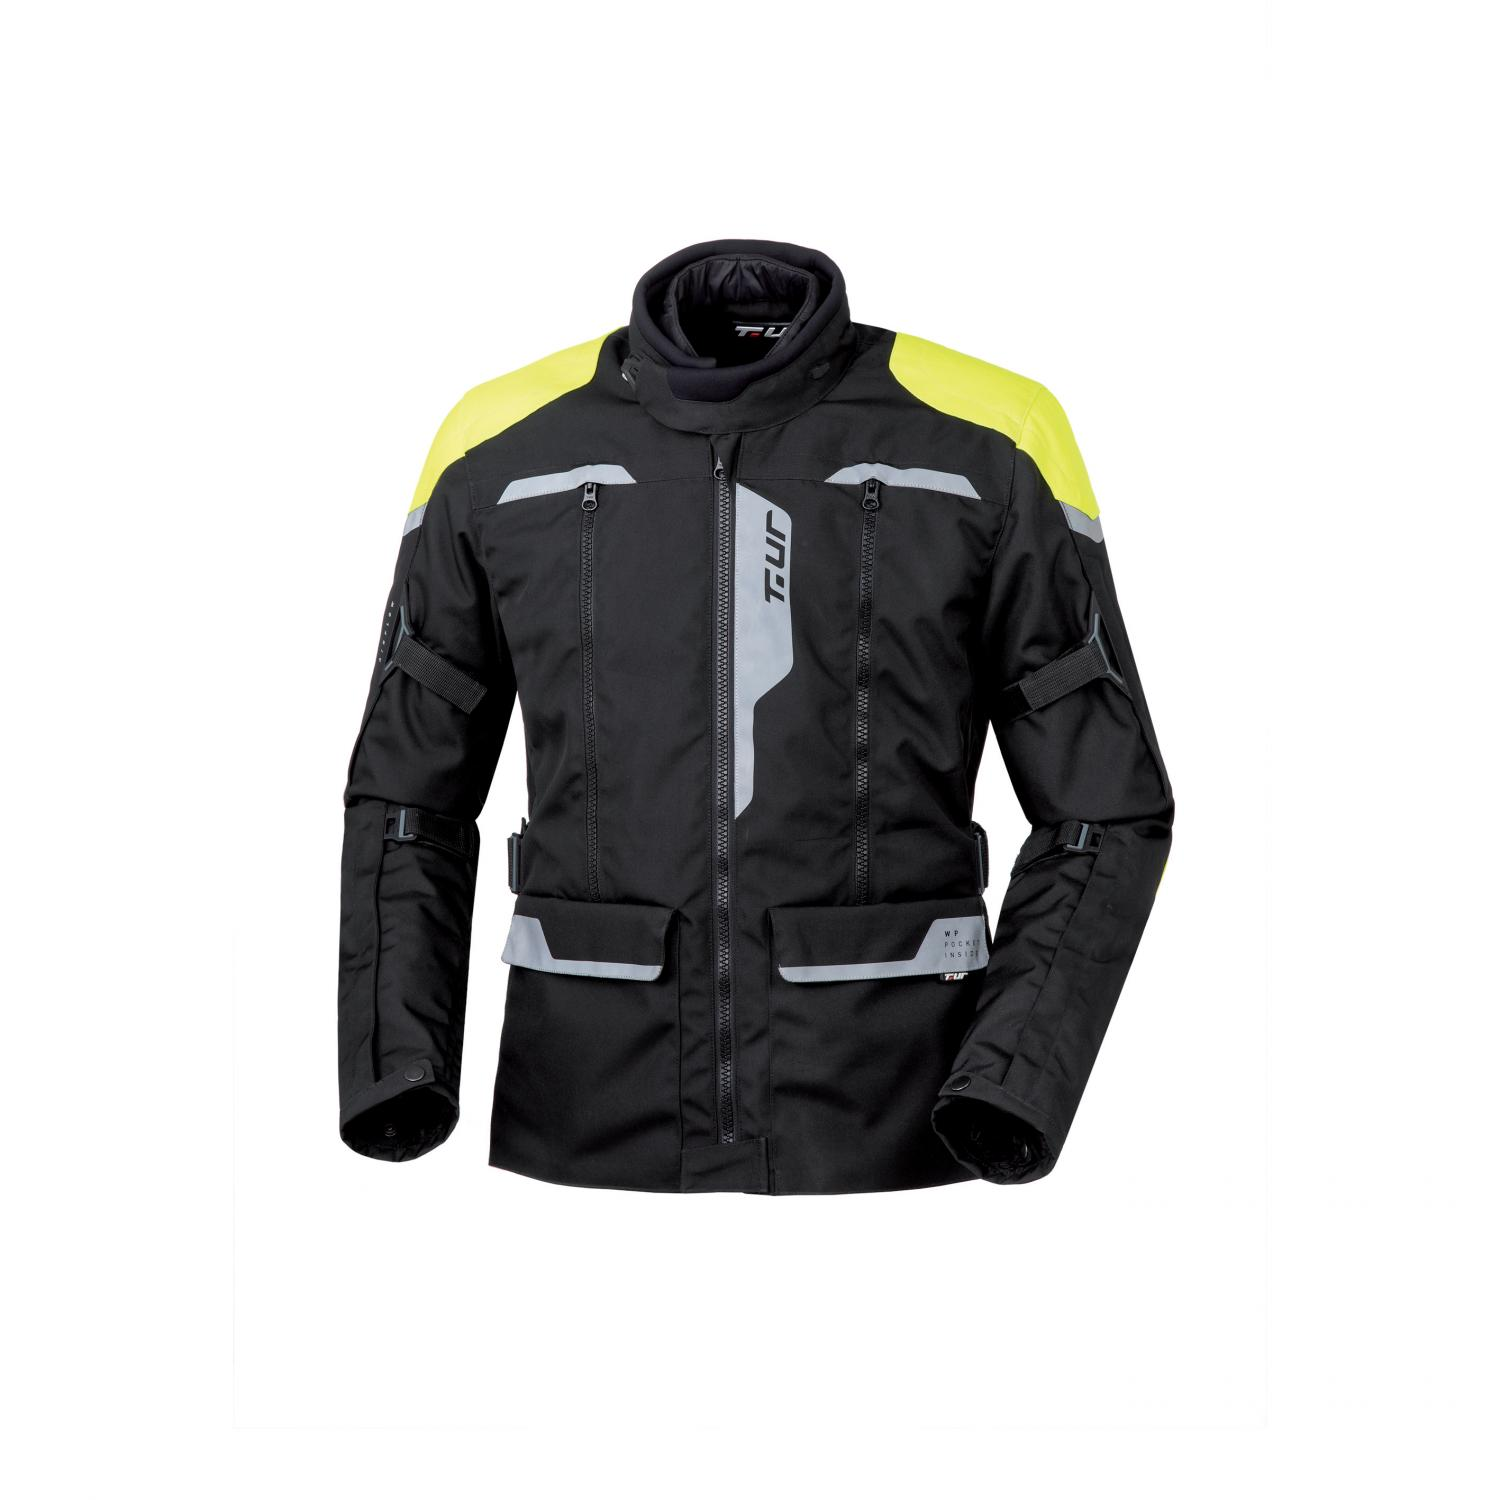 Giacca J-two Black – Yellow Fluo